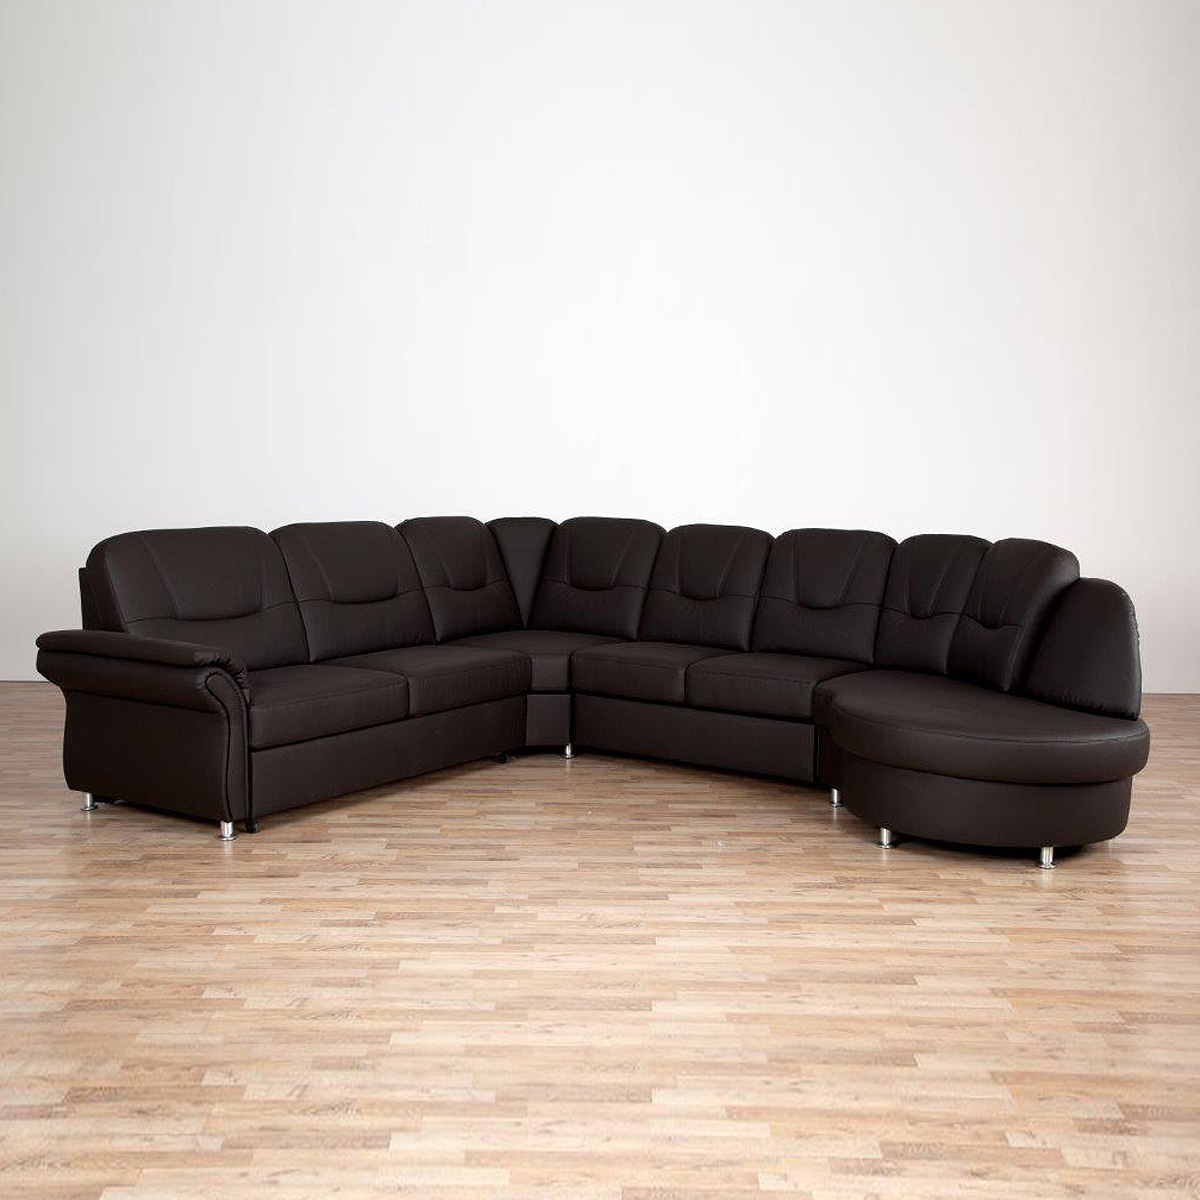 couch mit bettfunktion couch mit bettfunktion matratze carprola for sofa mit bettfunktion. Black Bedroom Furniture Sets. Home Design Ideas